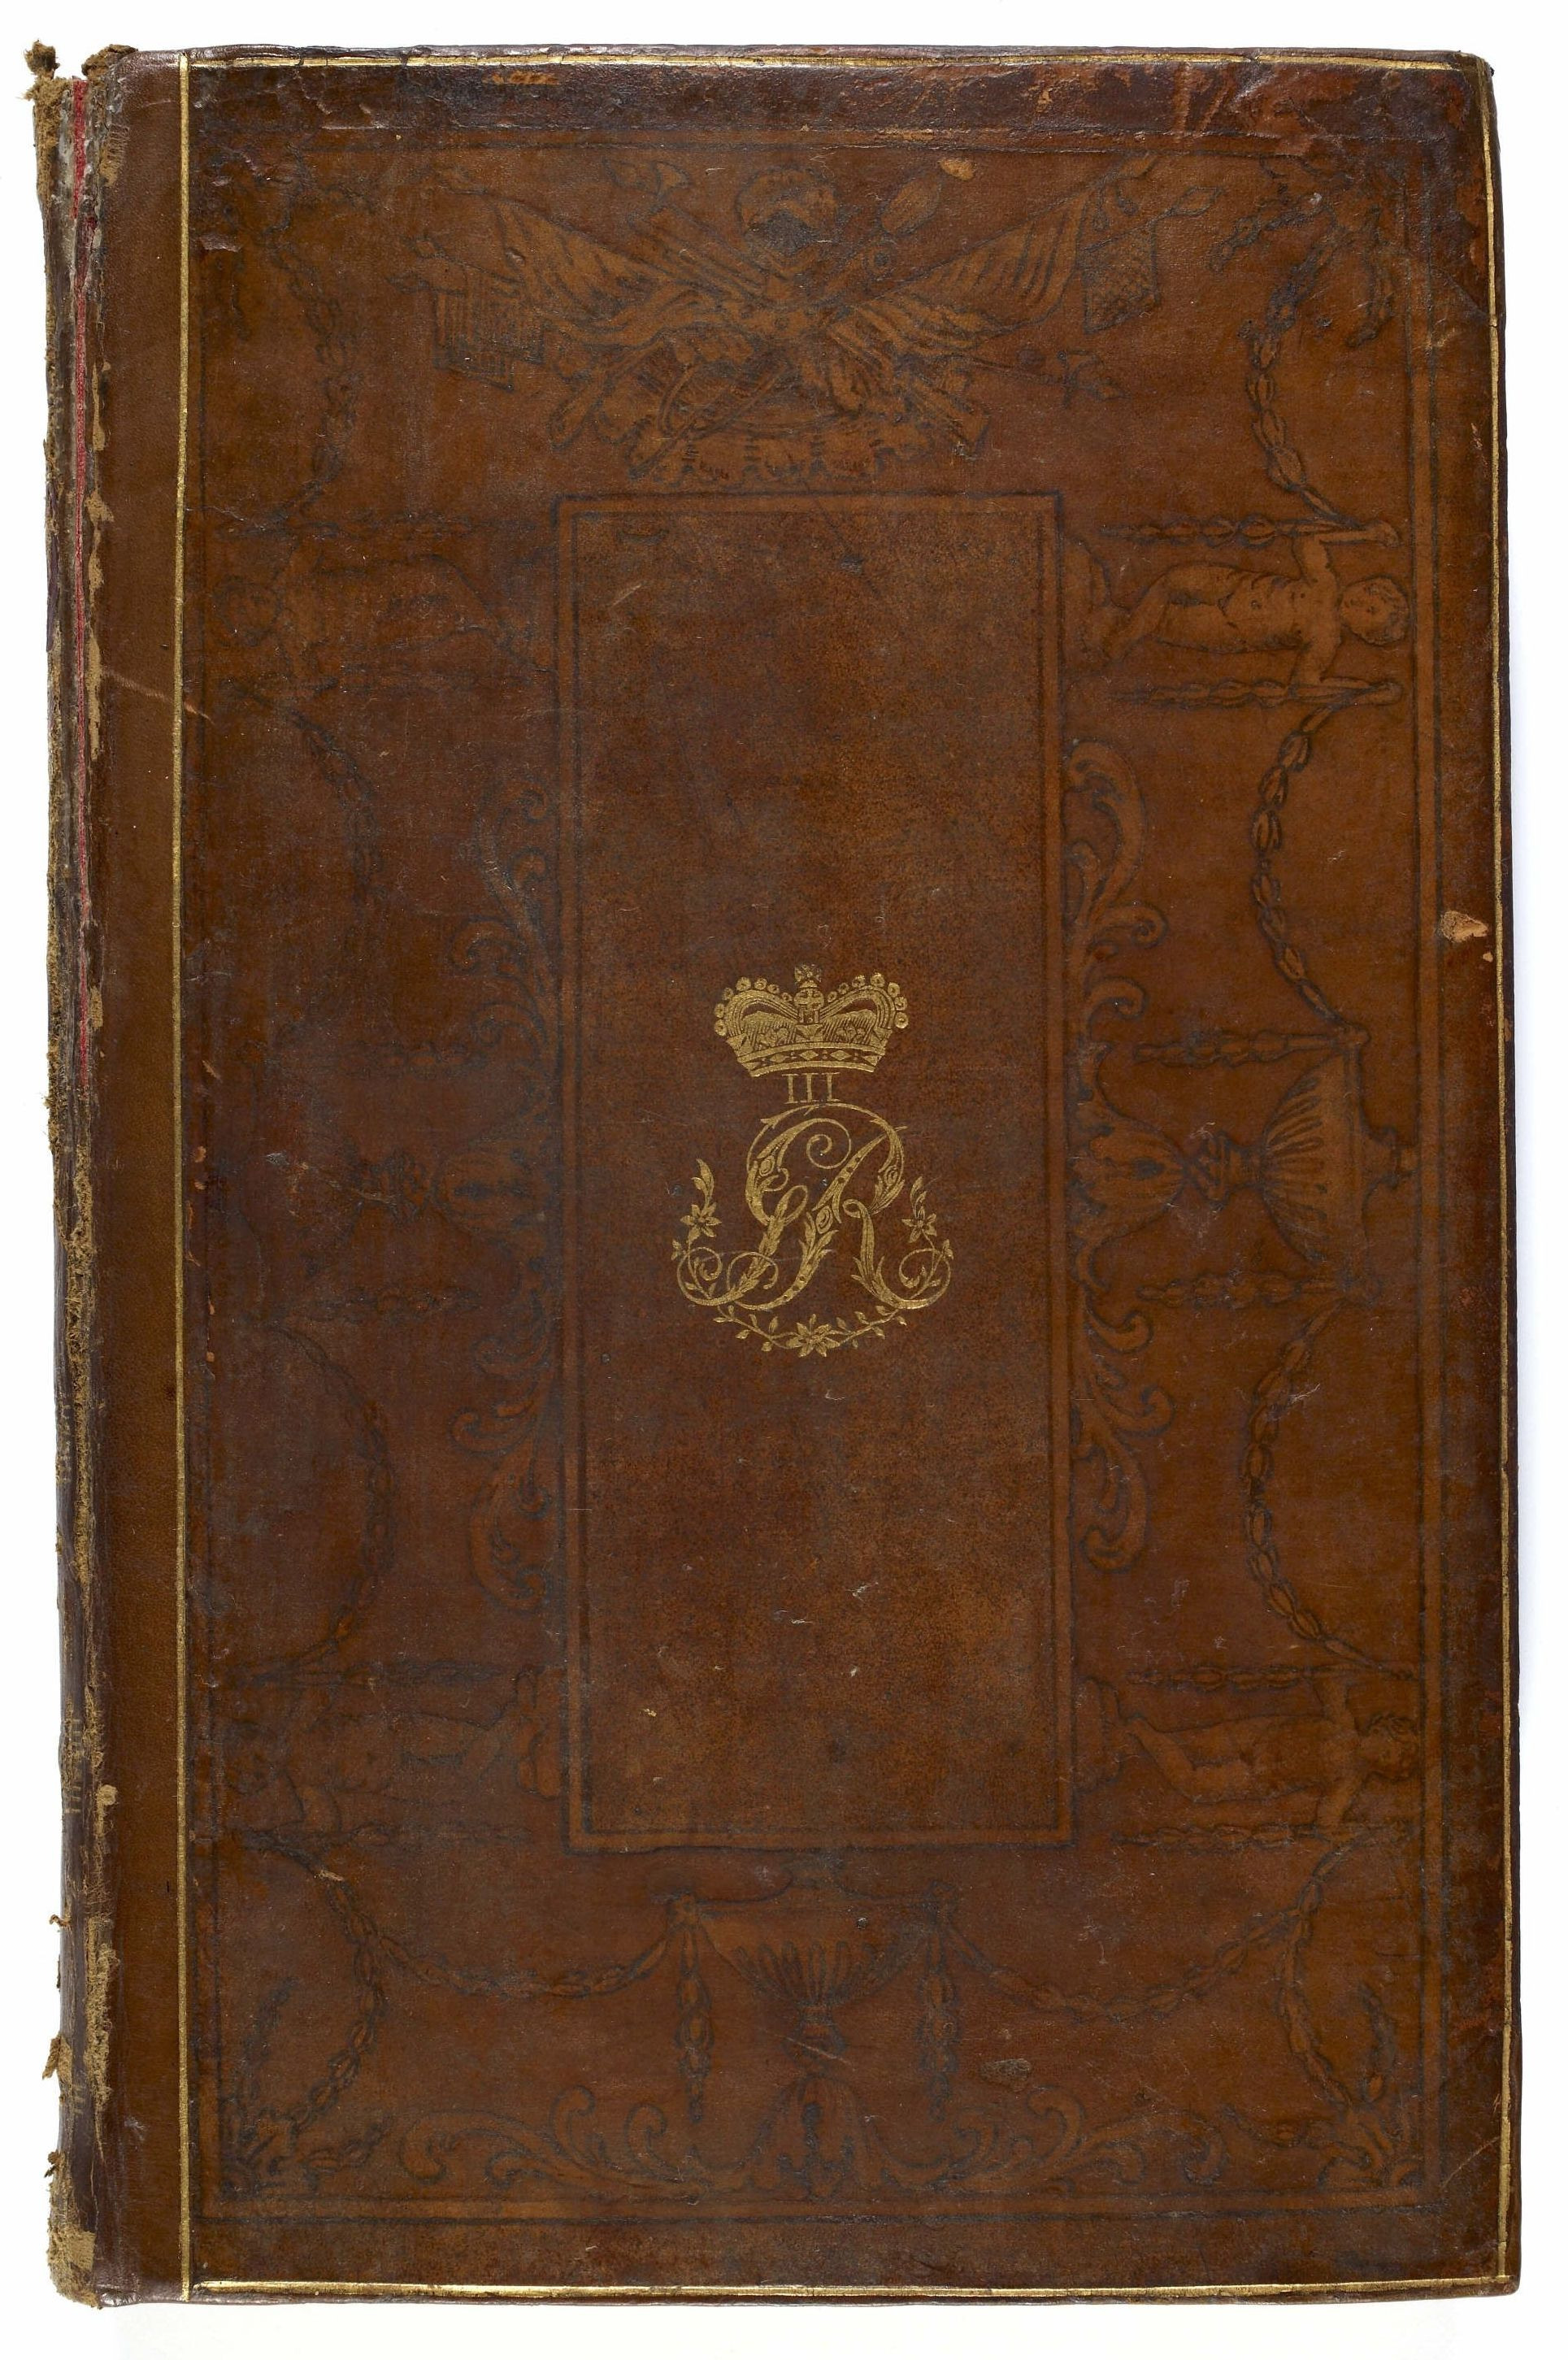 Thomas Simes, A Military Course for the government and conduct of a Battalion, designed for their regulations in Quarter, Camp, or Garrison; with ... observations and instructions for their manner of attack and defence. F.P. (London, 1777), 63.a.5.